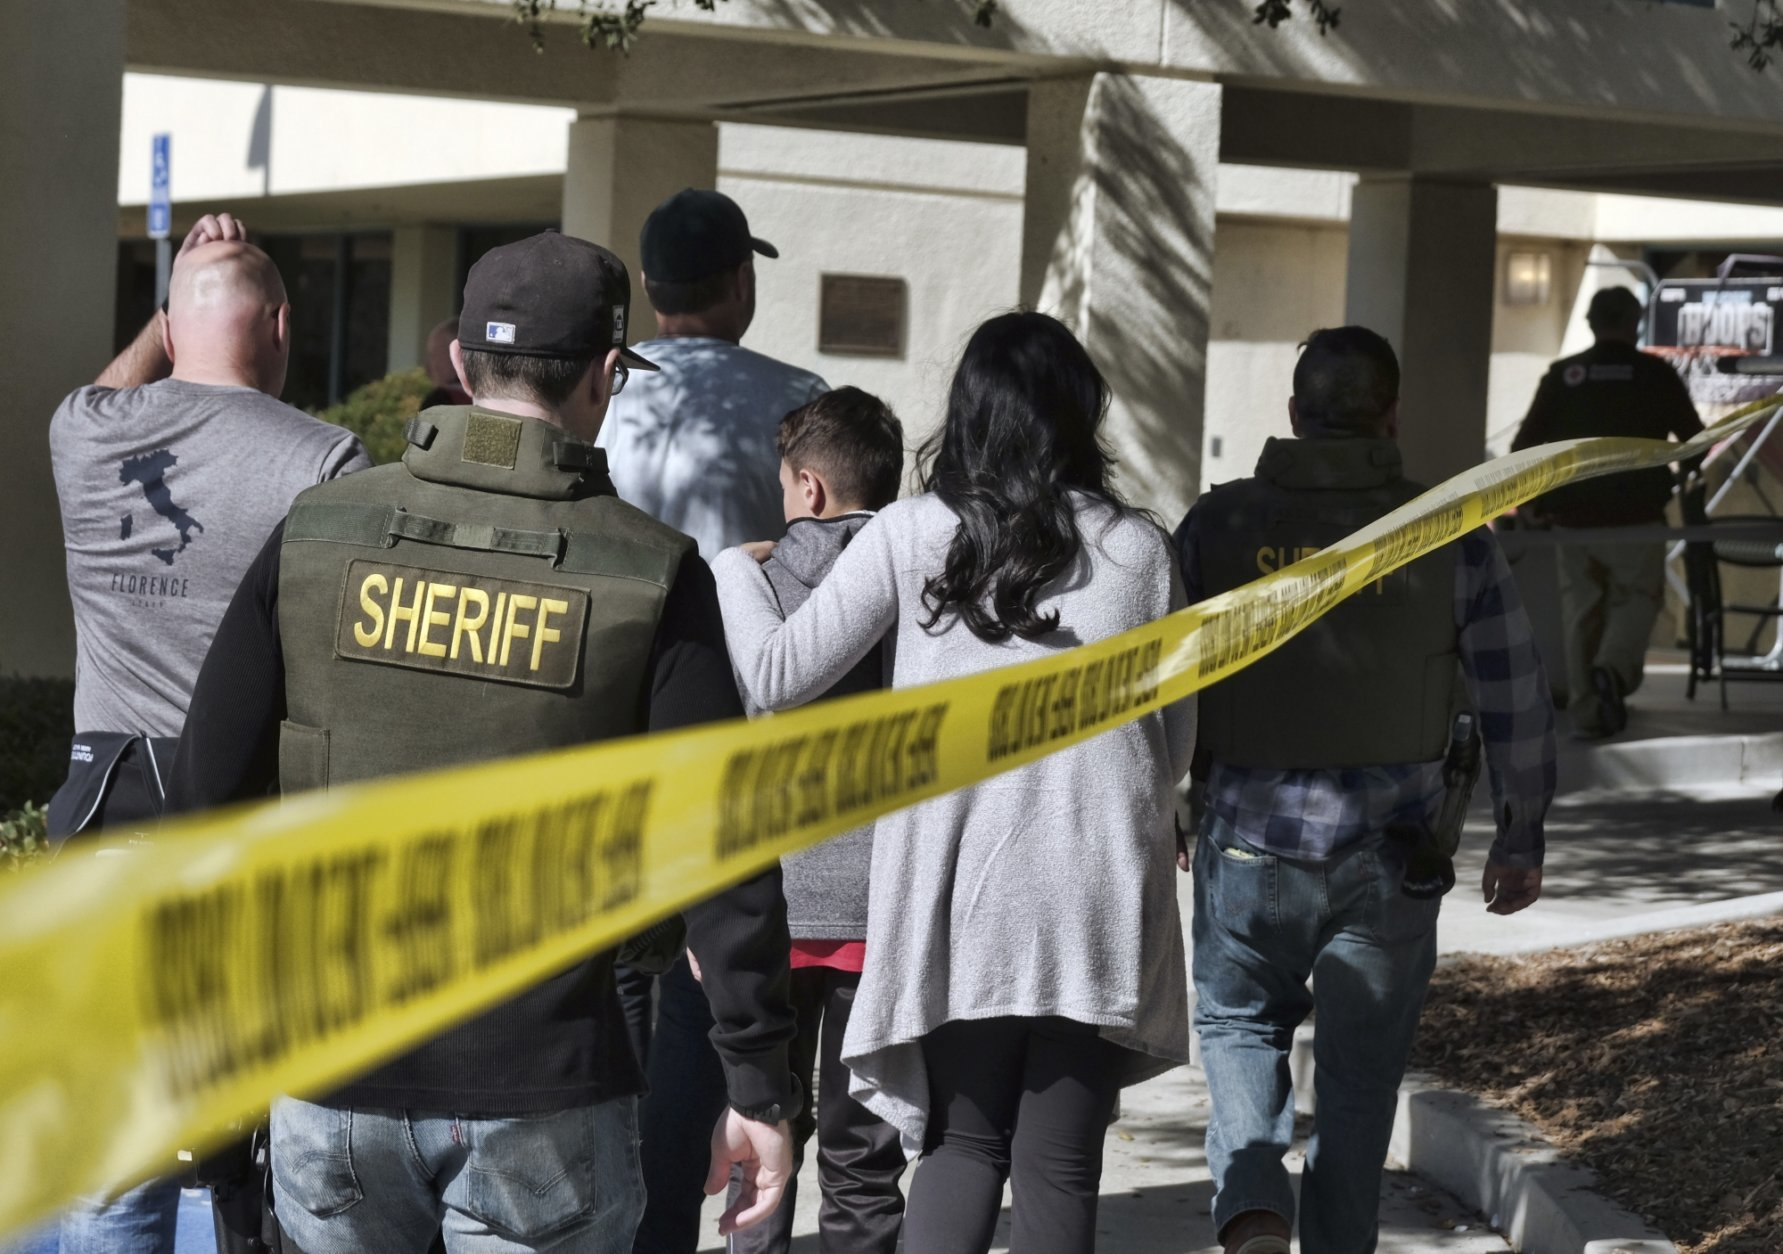 Family members are led into the Thousand Oaks Teen Center where families have gathered after a deadly shooting at a bar on Thursday, Nov. 8,2018, in Thousand Oaks, Calif. Multiple people were shot and killed late Wednesday by the gunman who opened fire at the Borderline Bar & Grill, which was holding a weekly country music dance night for college students. (AP Photo/Richard Vogel)